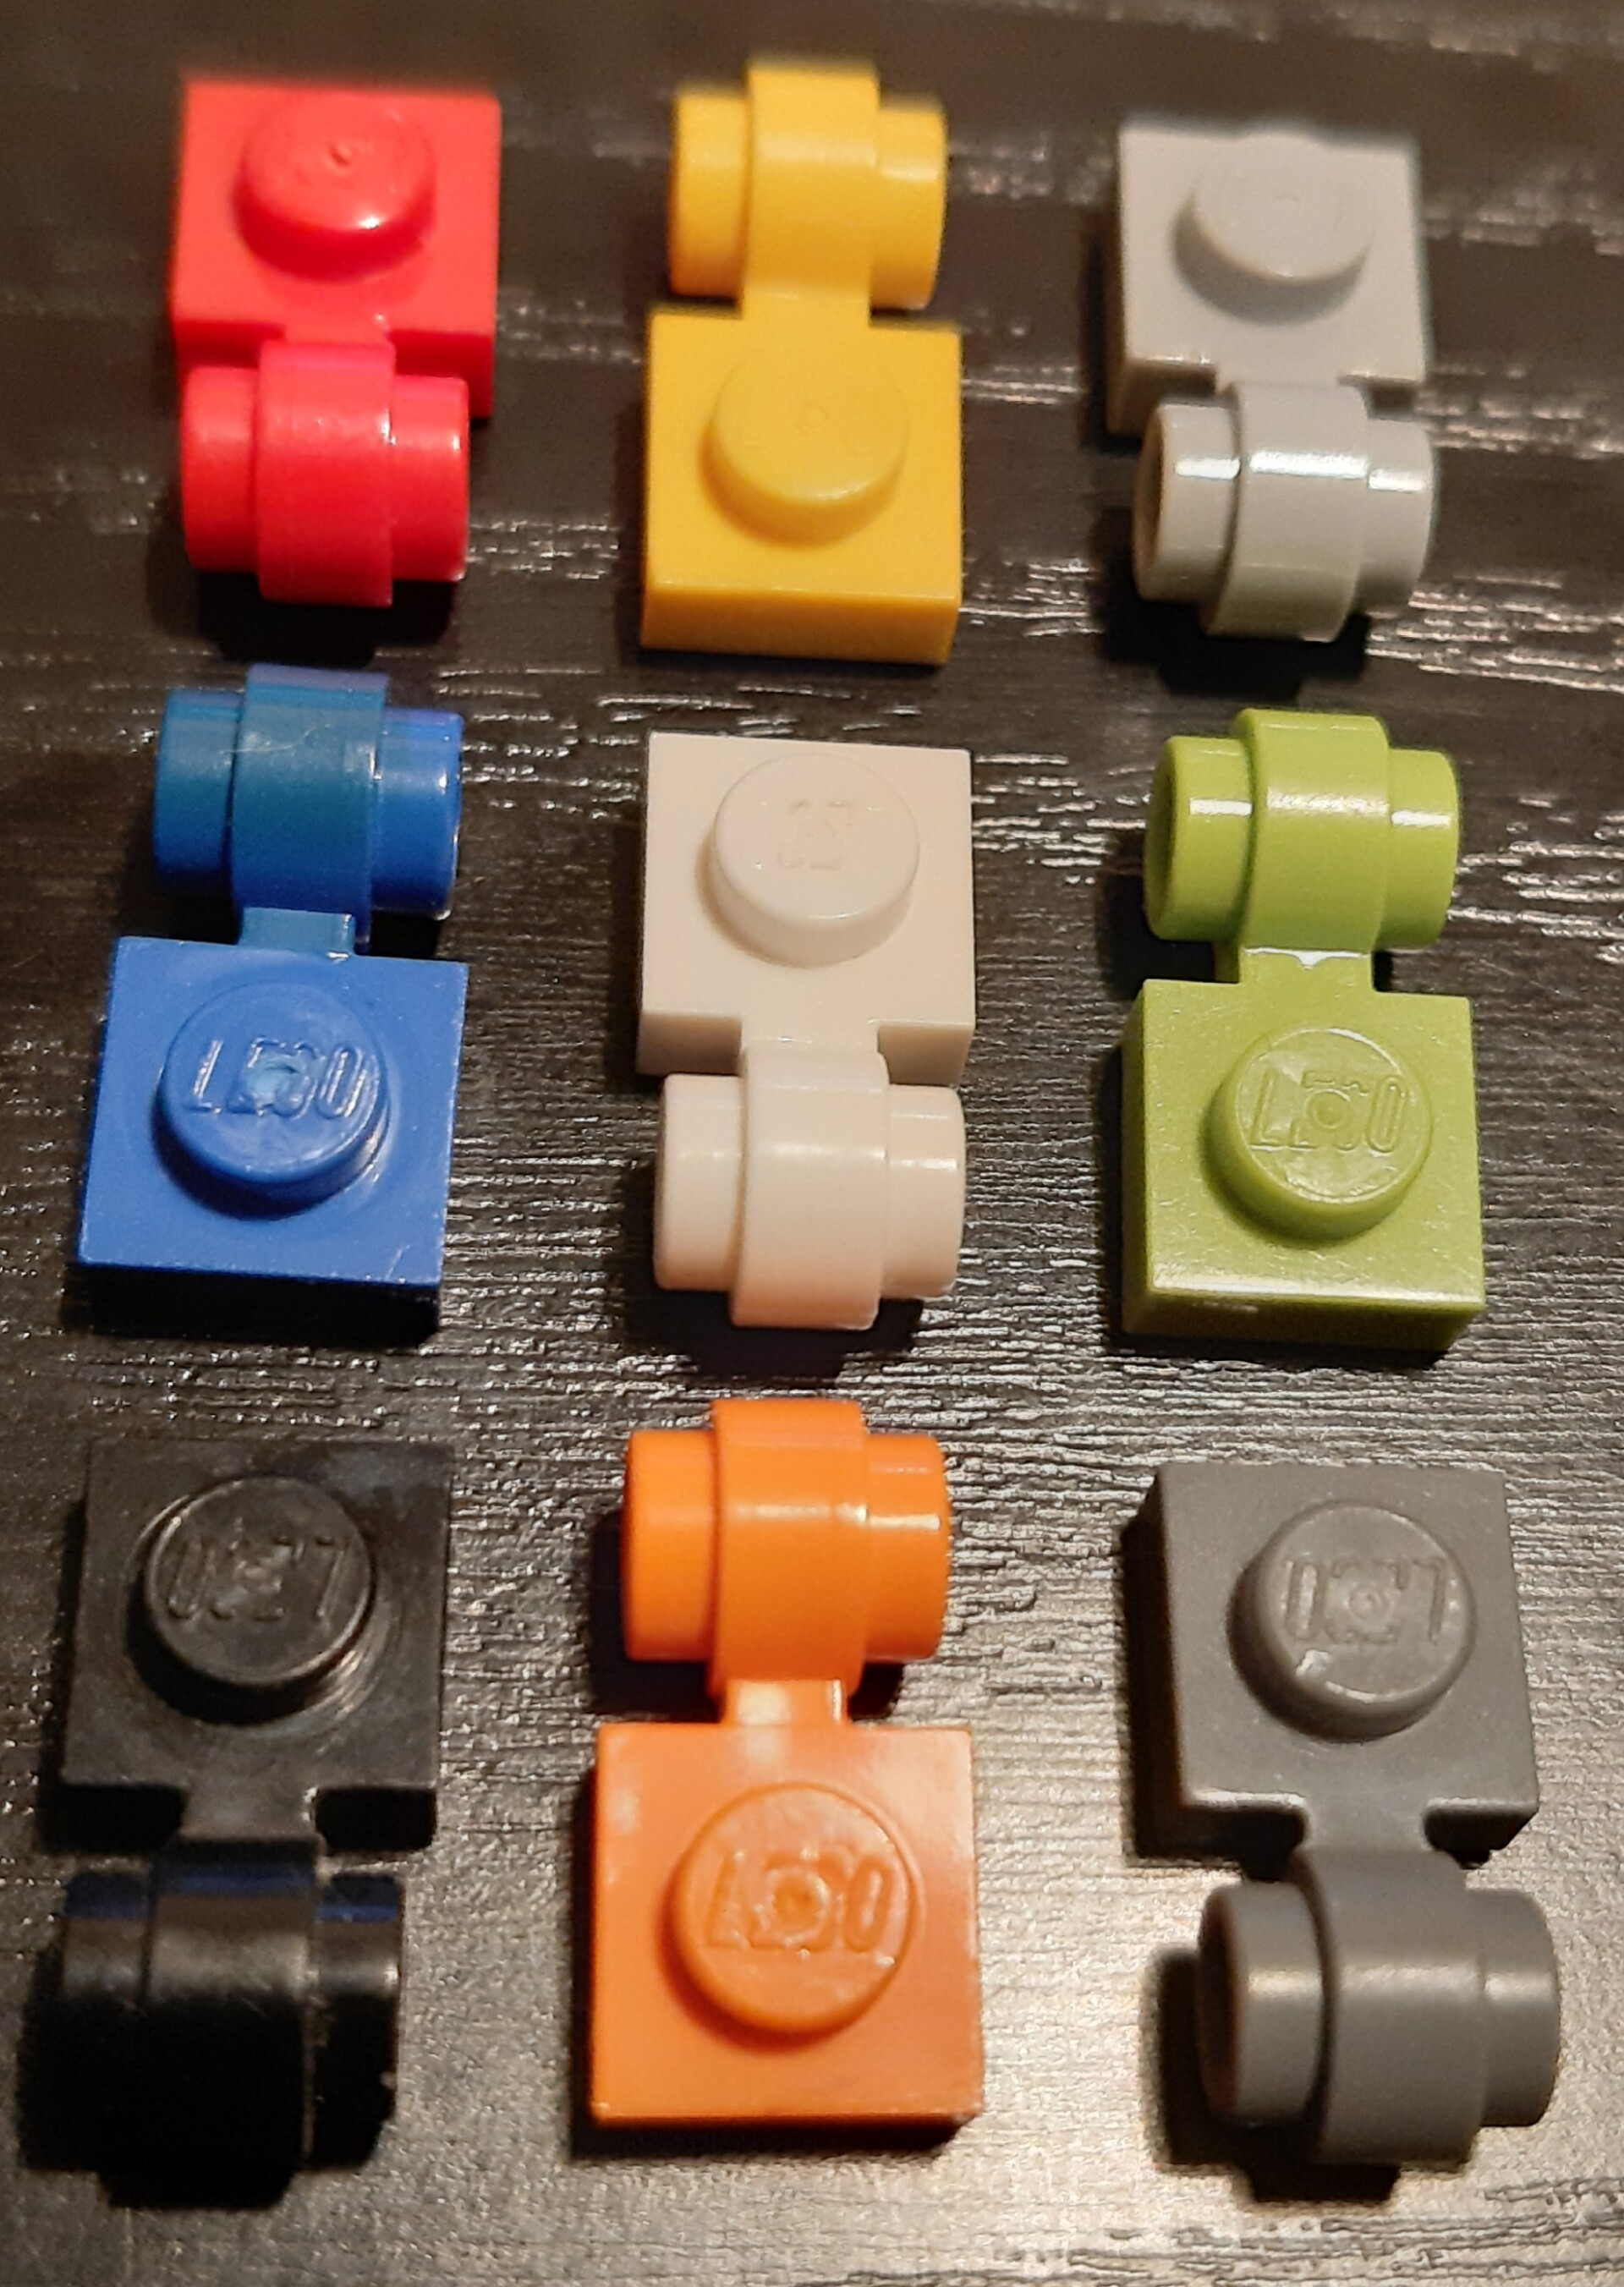 Lego 5 New Dark Bluish Gray Plates Modified 1 x 1 with Clip Light Thick Ring